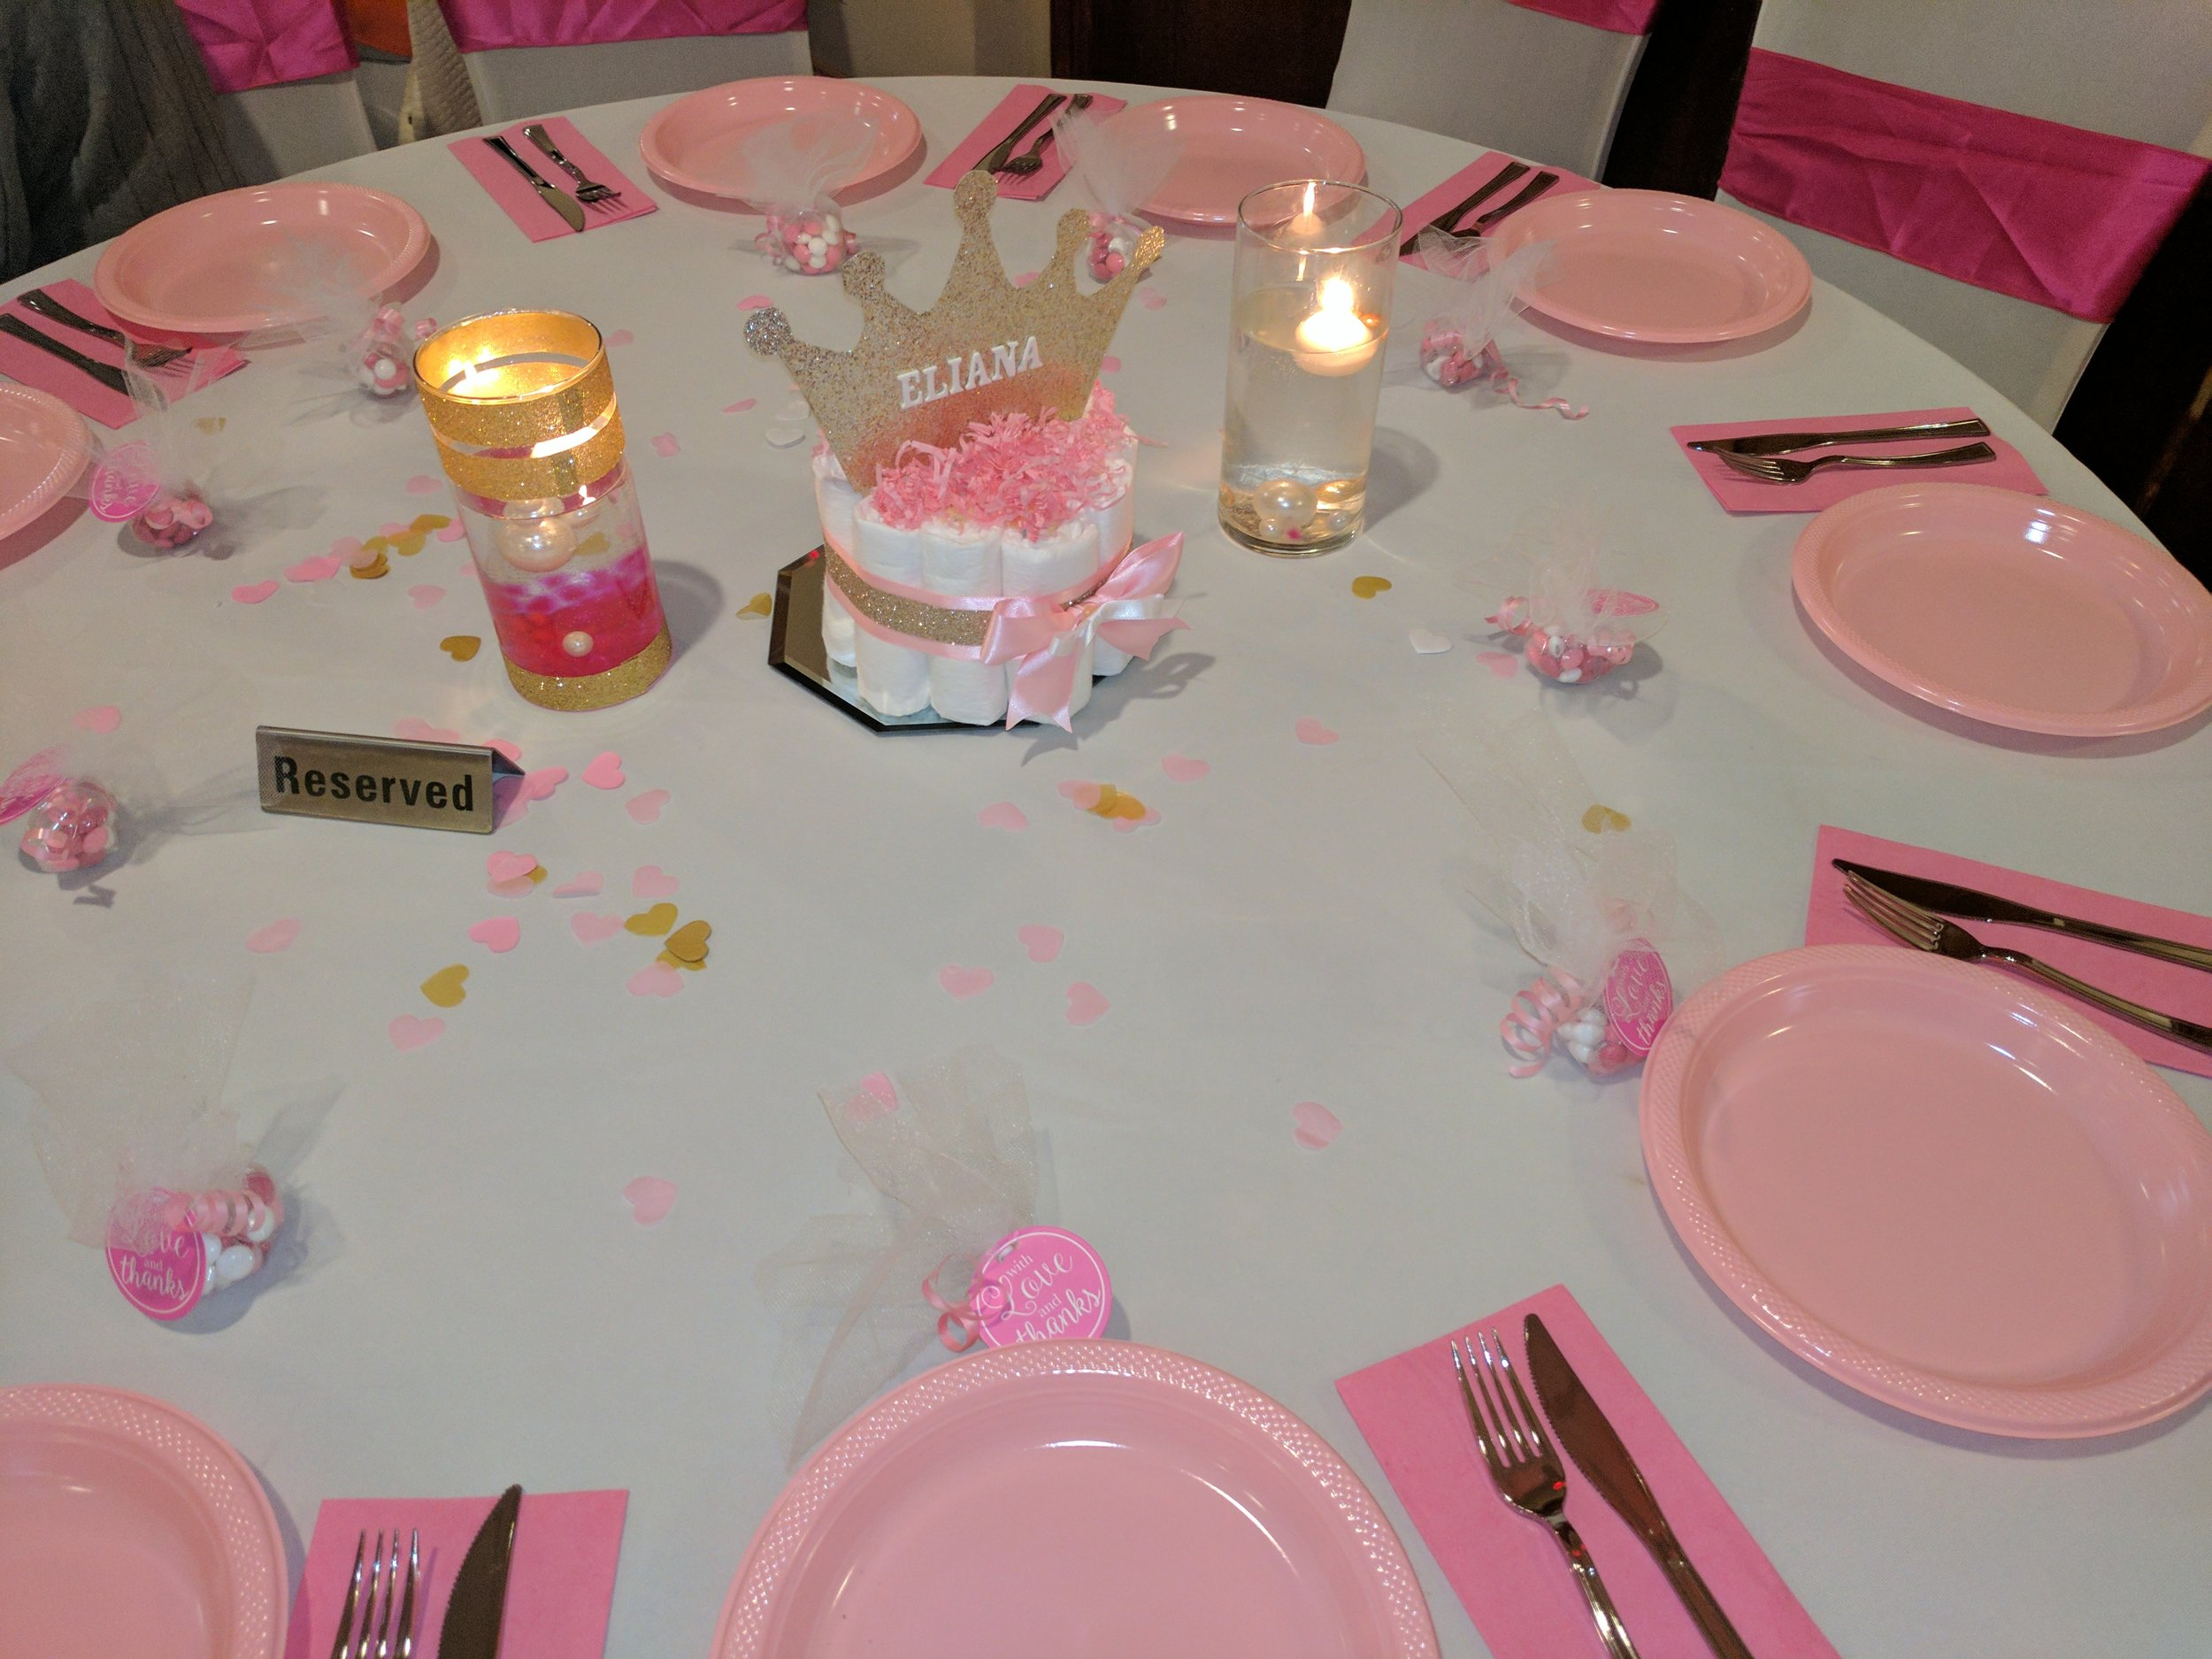 These handmade diaper cake centerpieces added the finishing touches to the tablescape!